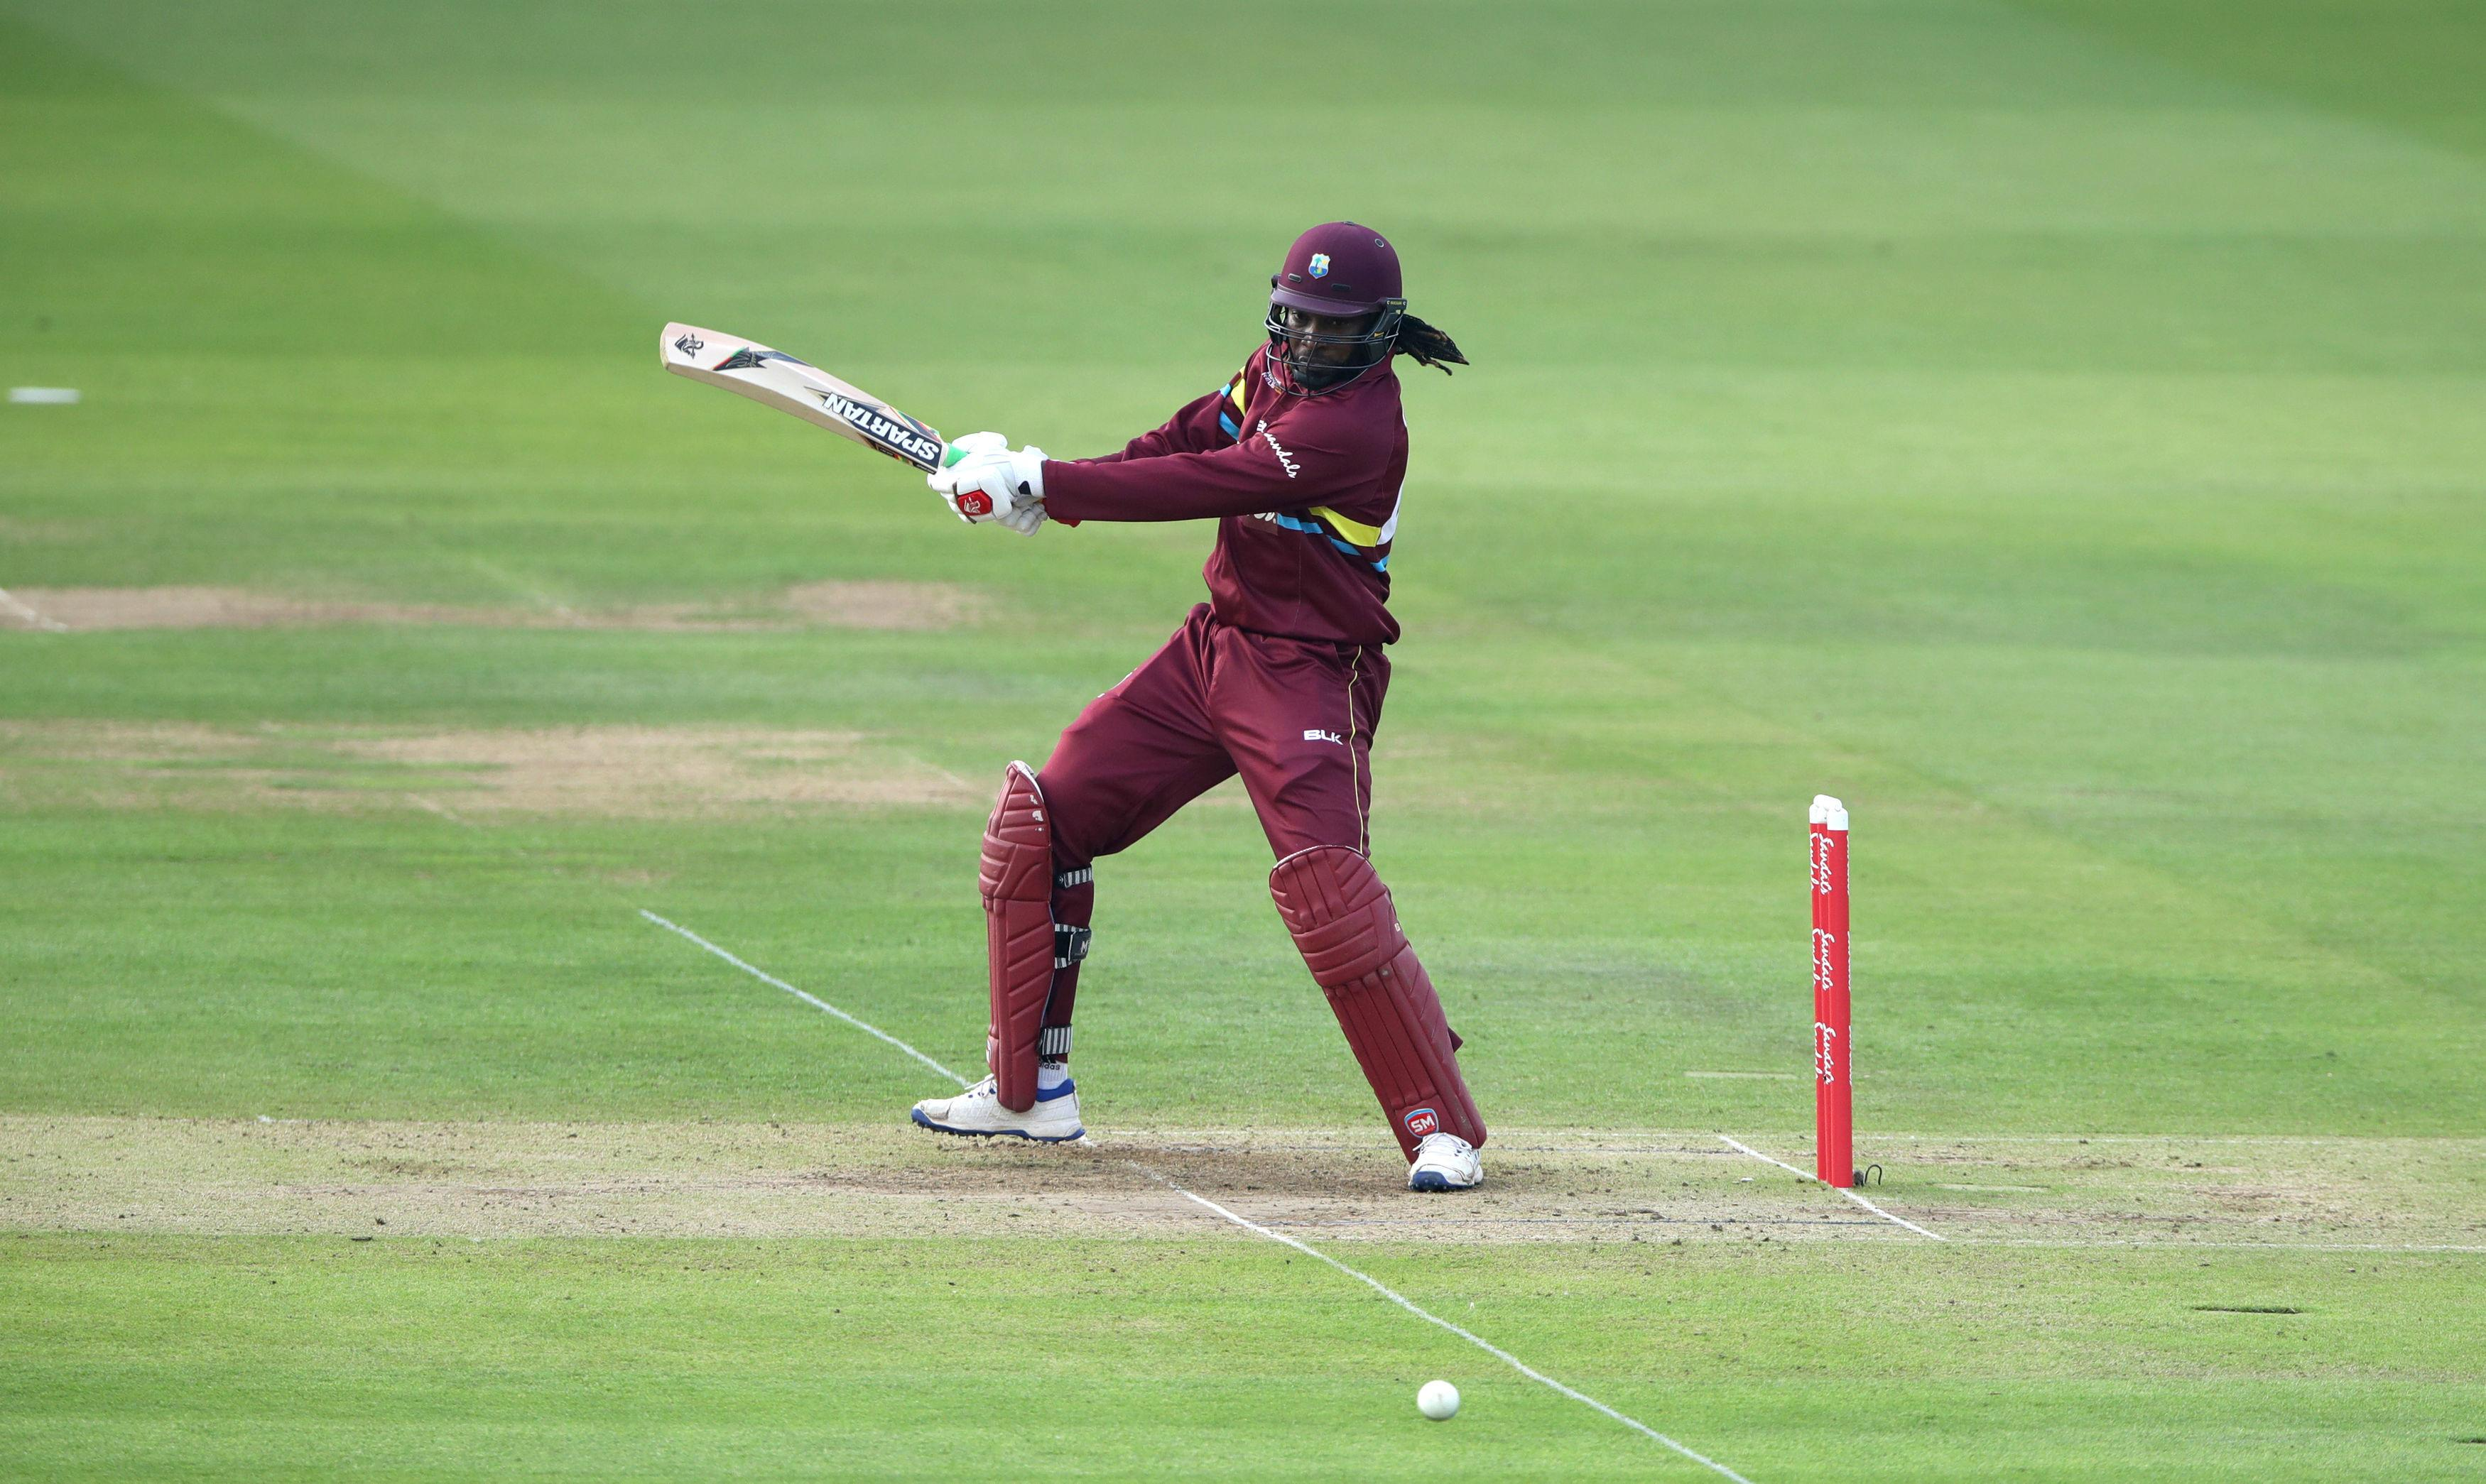 Chris Gayle was also in action for West Indies after travelling straight from the IPL